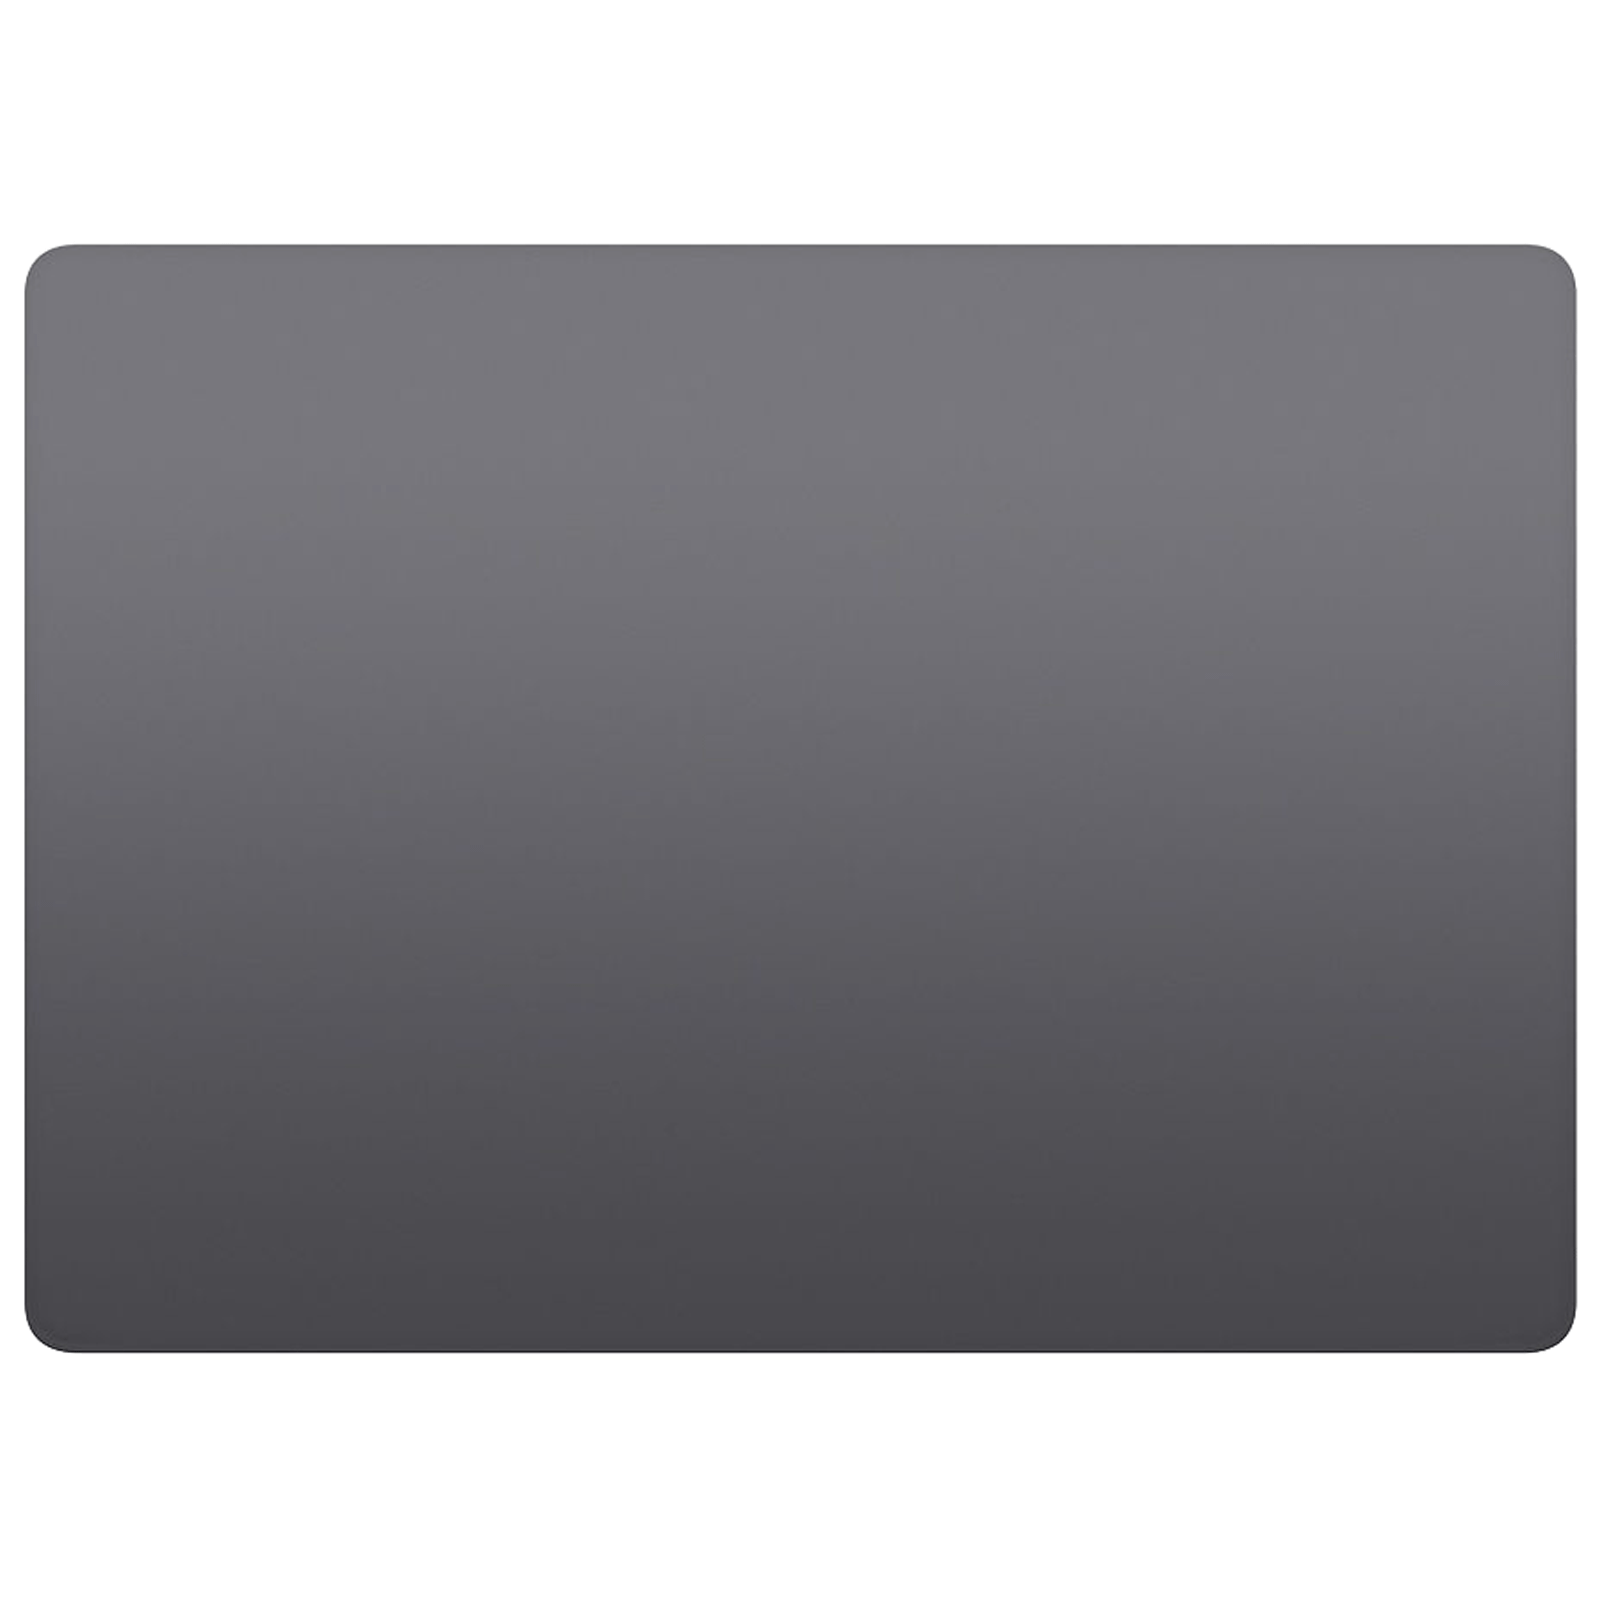 Apple Magic 2 Digital Pad For MacBook &iPad (Force Touch Technology, MRMF2ZM/A, Space Grey)_1